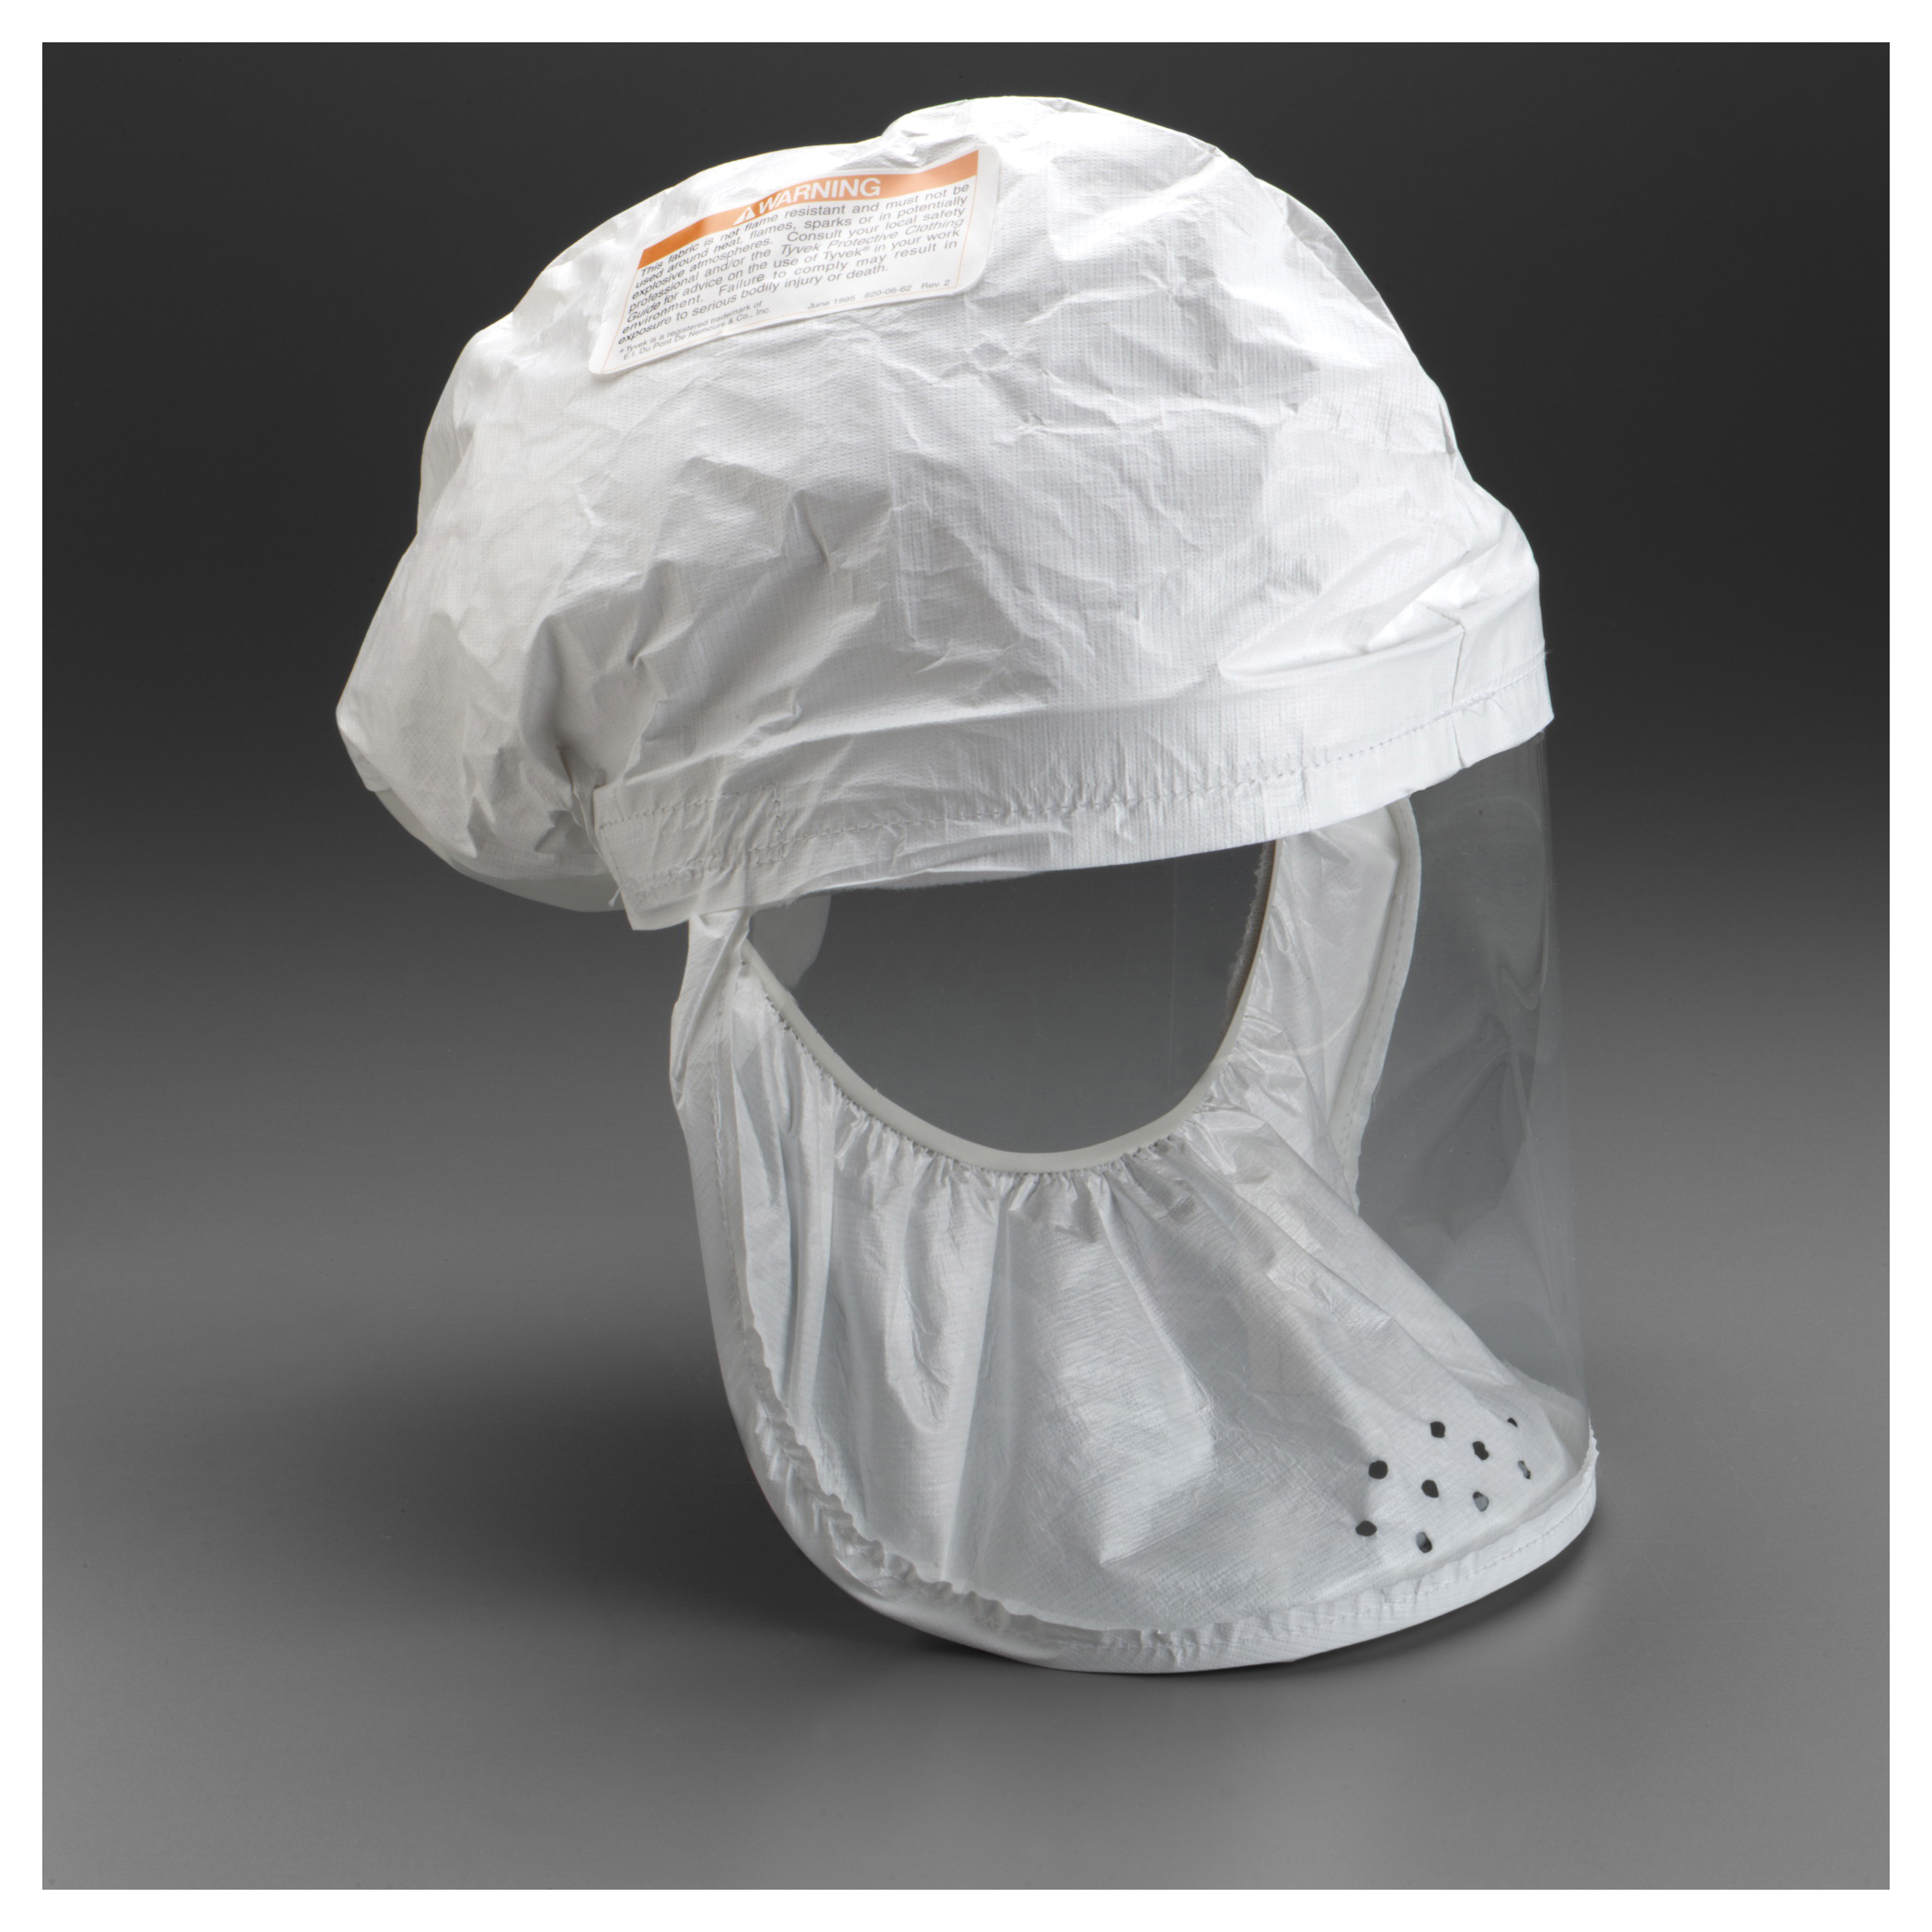 3M™ Breathe Easy™ 051138-72431 BE-12-50 Head Cover, For Use With Air-Mate™ and Breathe Easy™ PAPR System